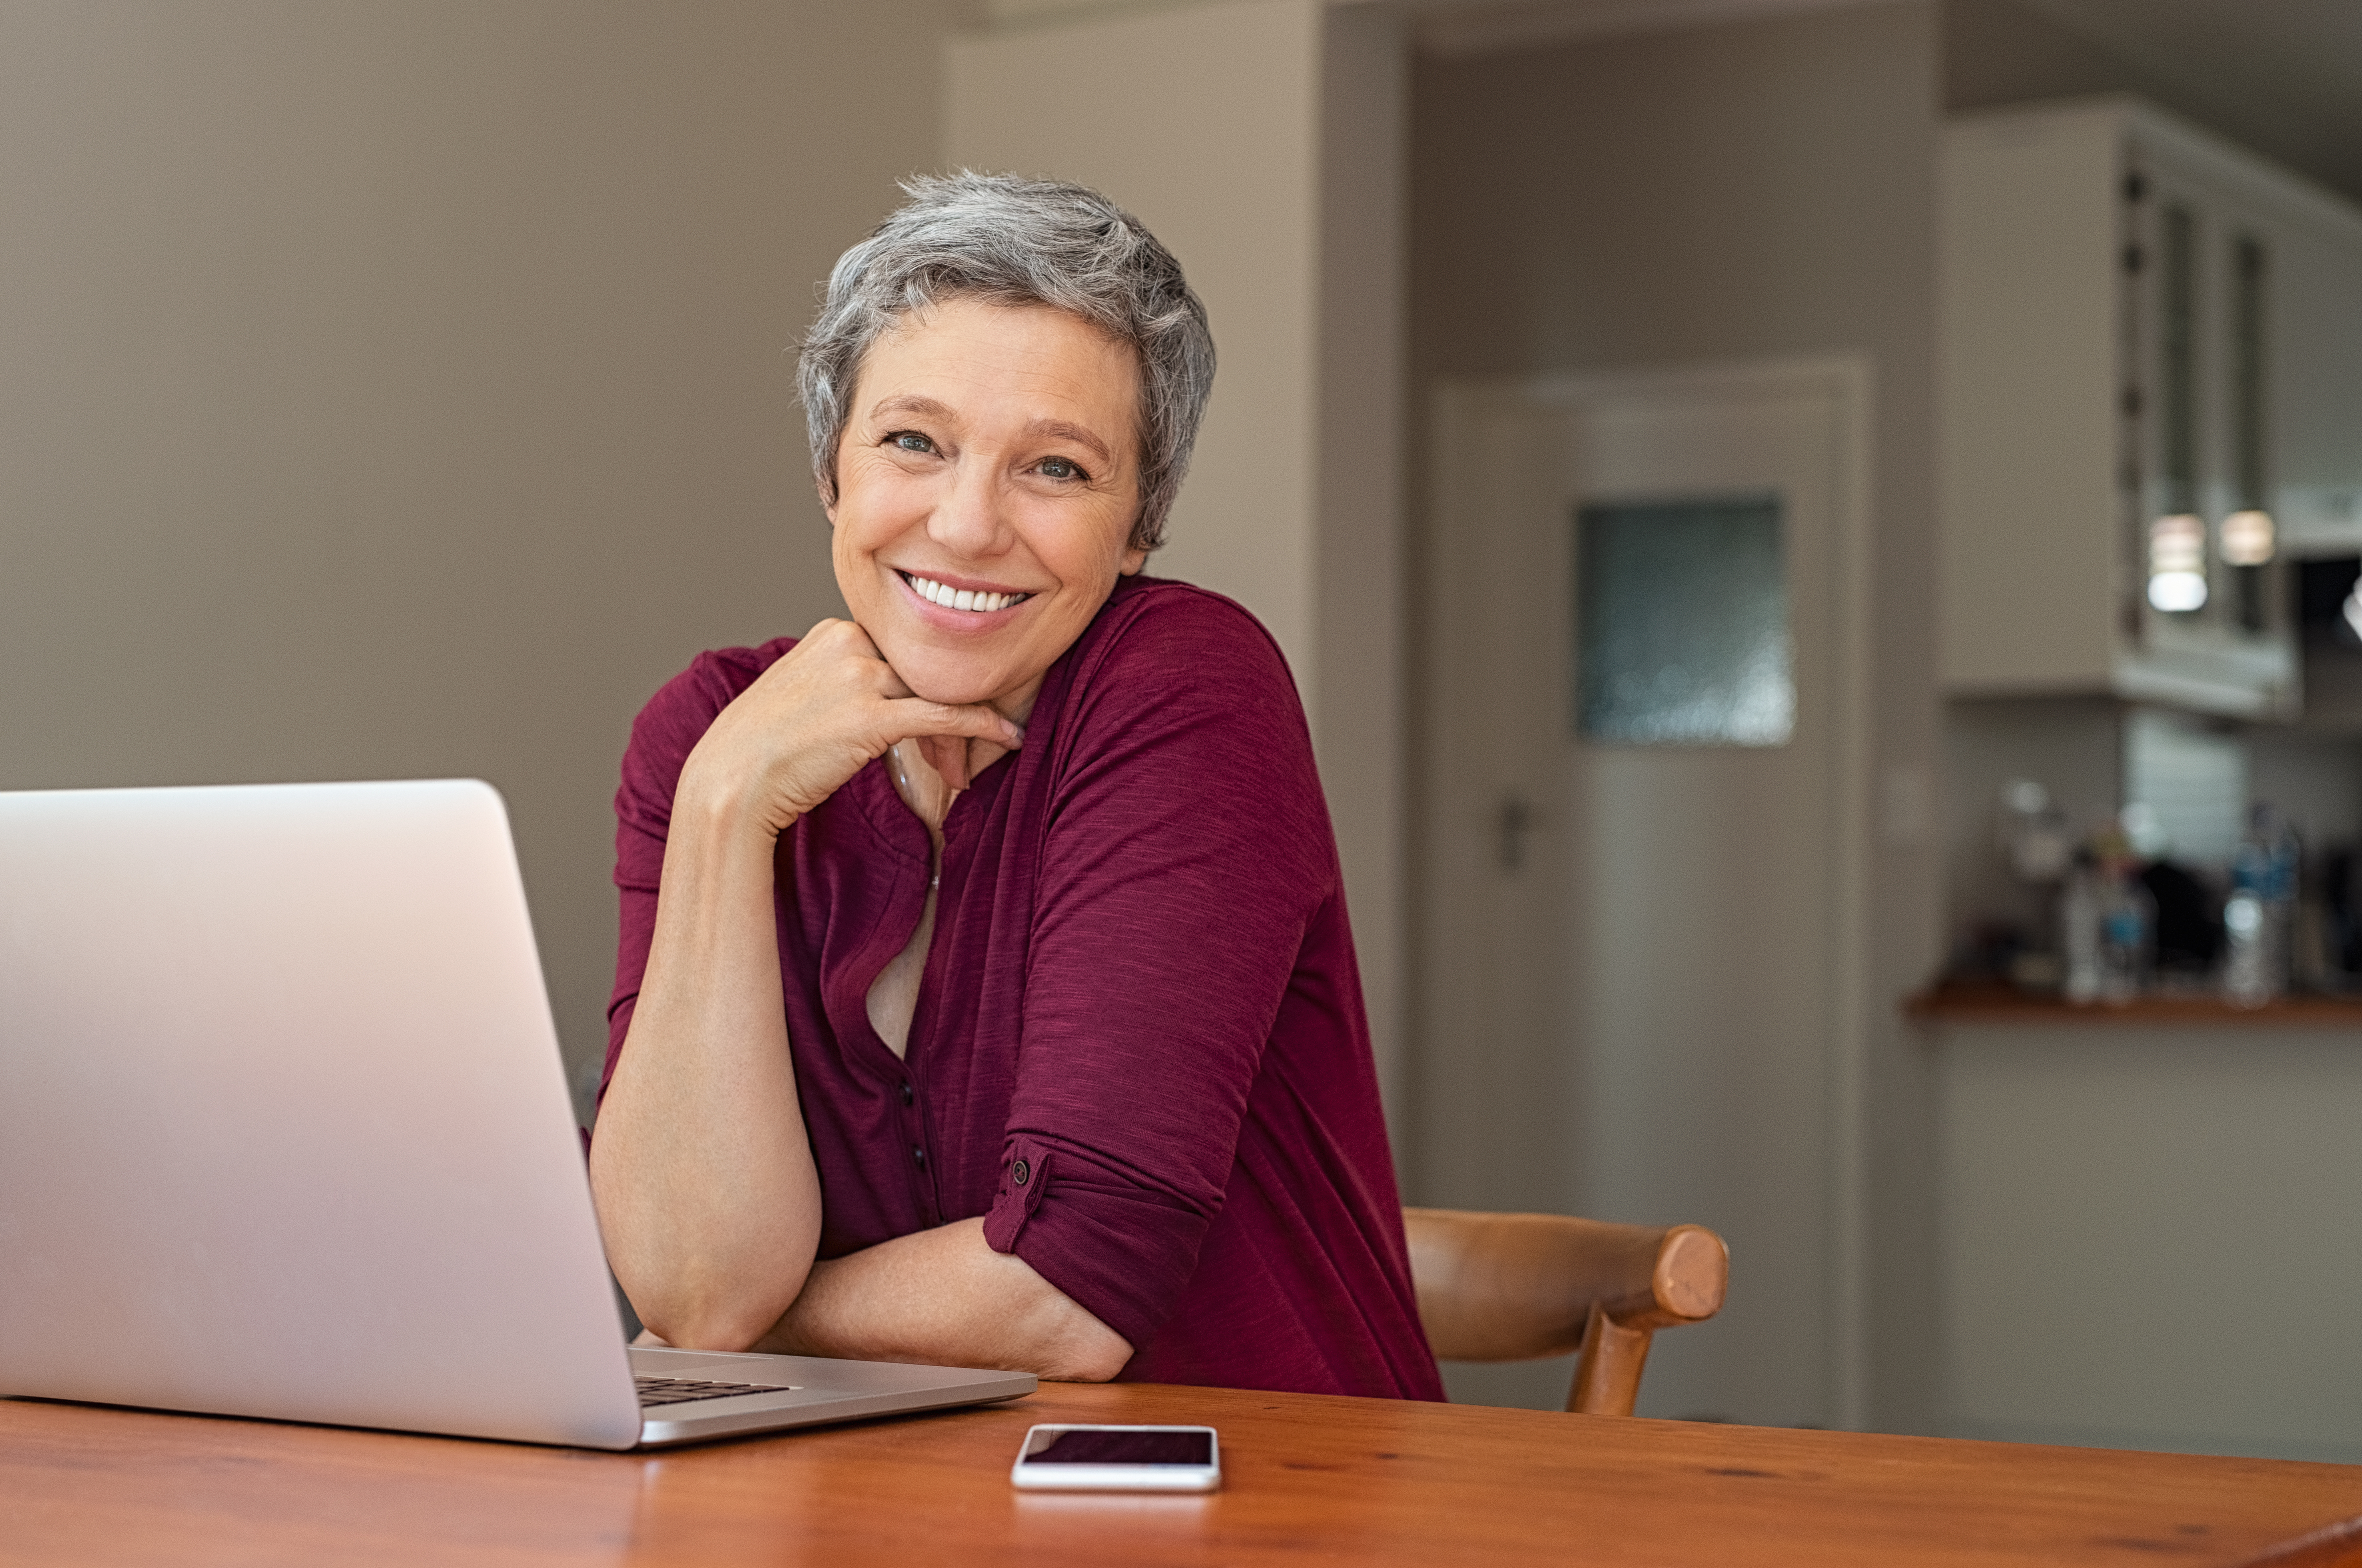 Older adult women using a laptop with their mobile phone in reach